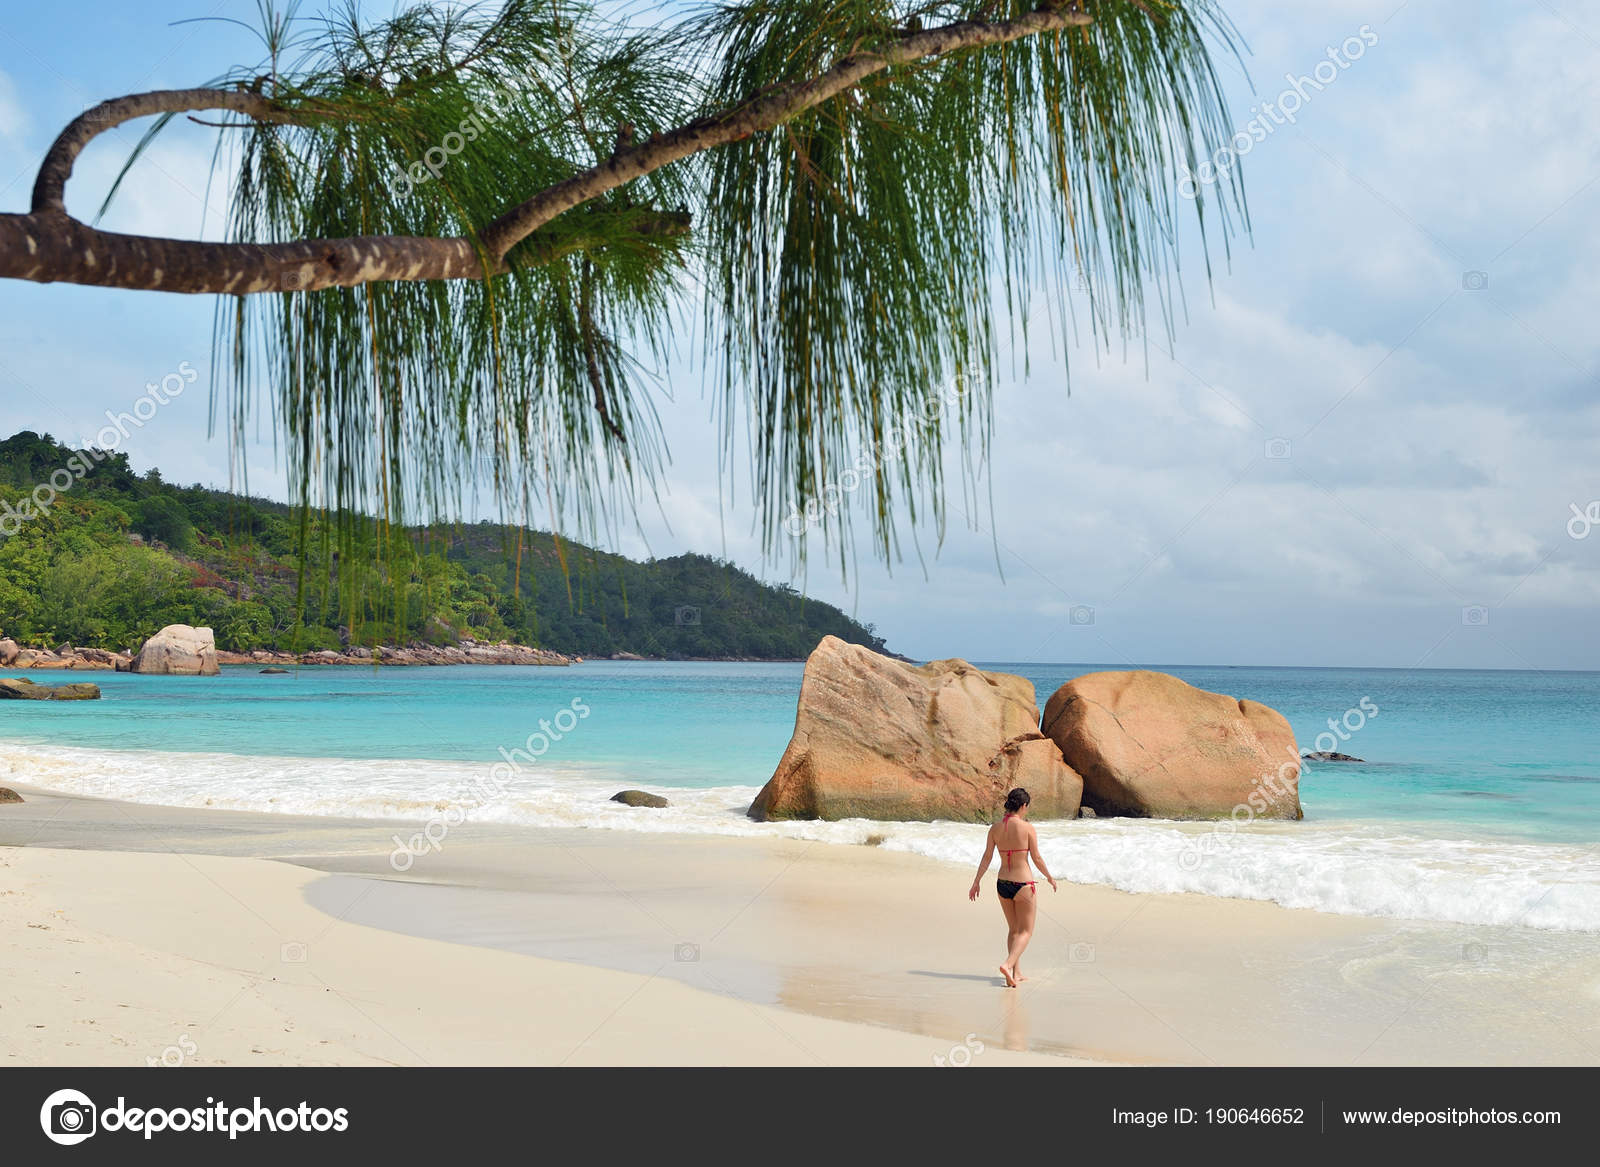 tropical beaches, seychelles islands — stock photo © znm666 #190646652